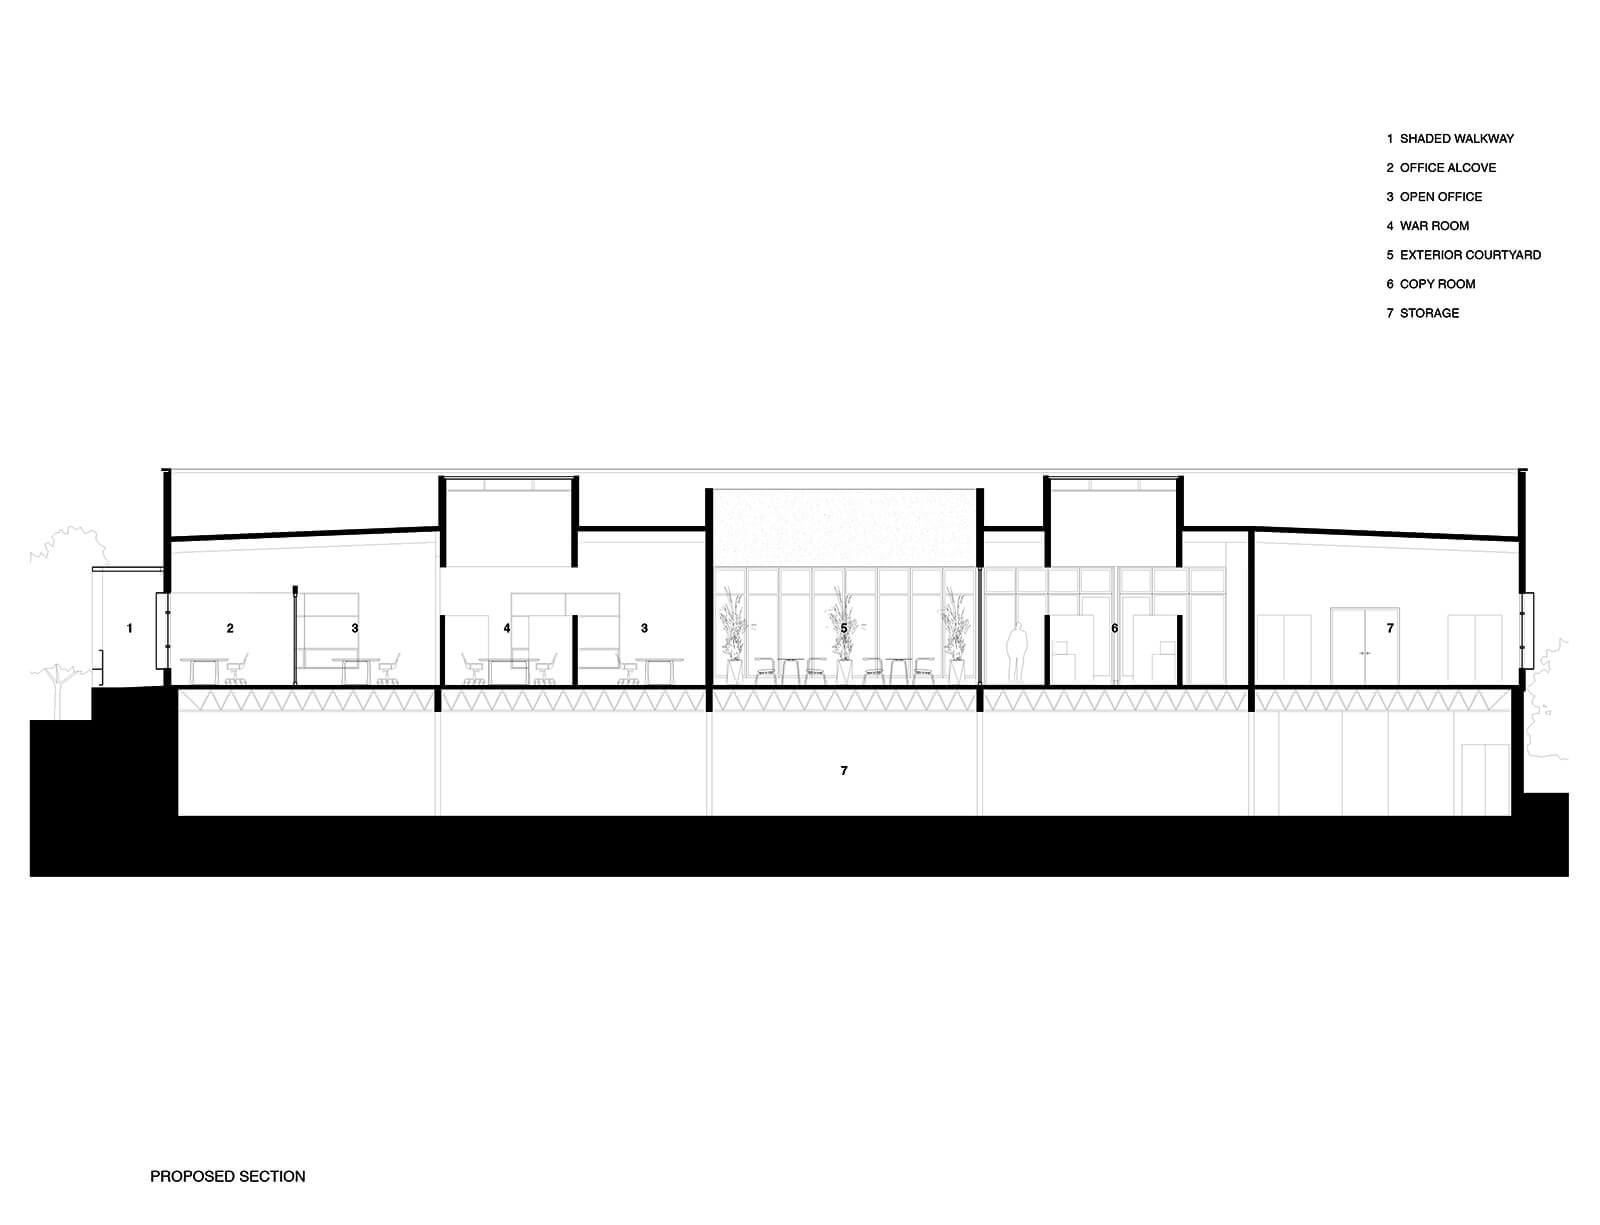 studio vara case study redwood highway proposed section